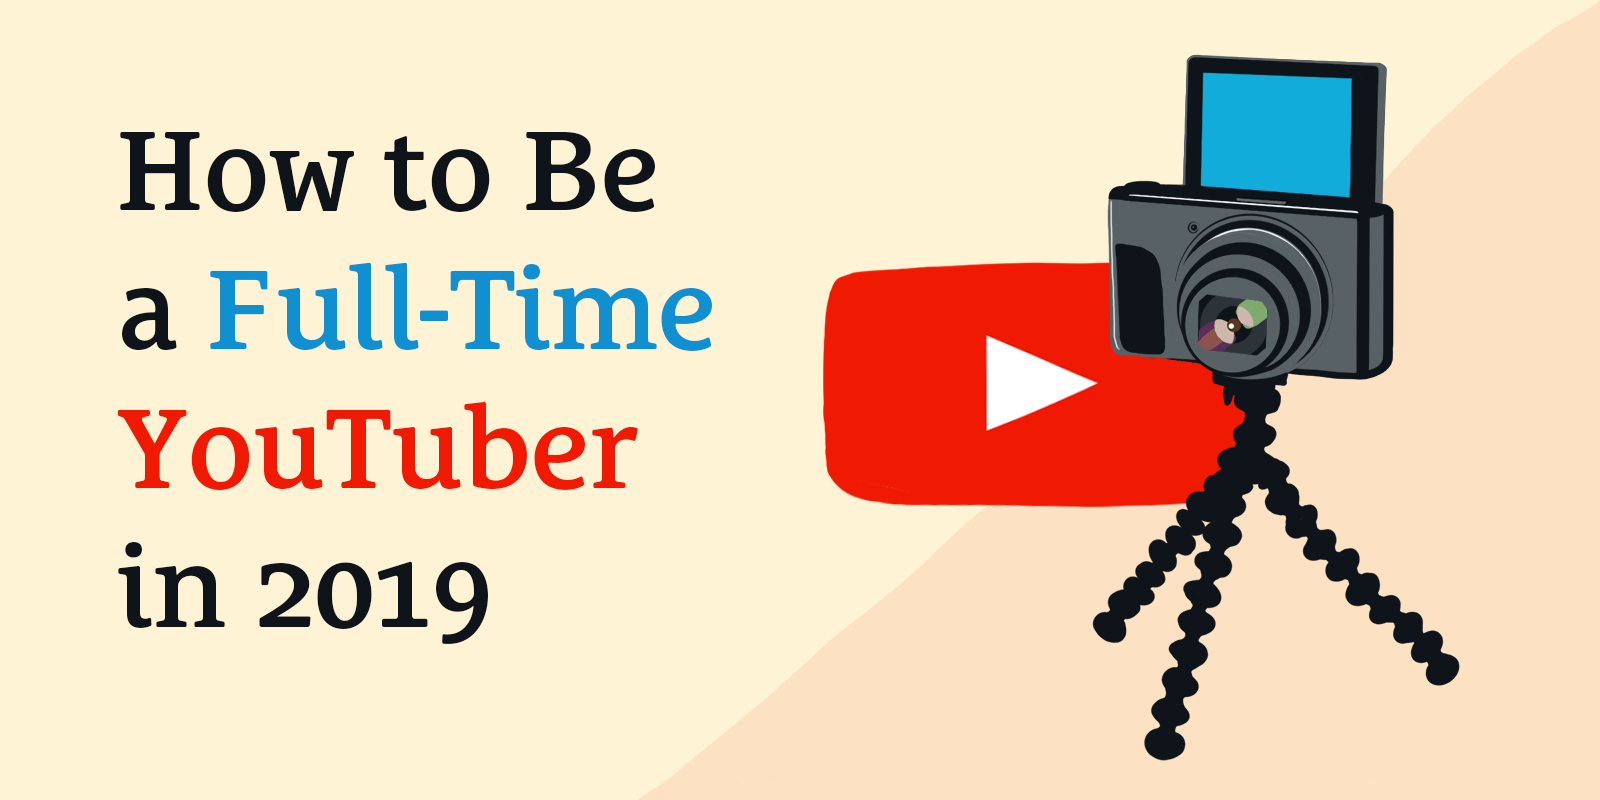 How to Be a Full-Time YouTuber in 2019